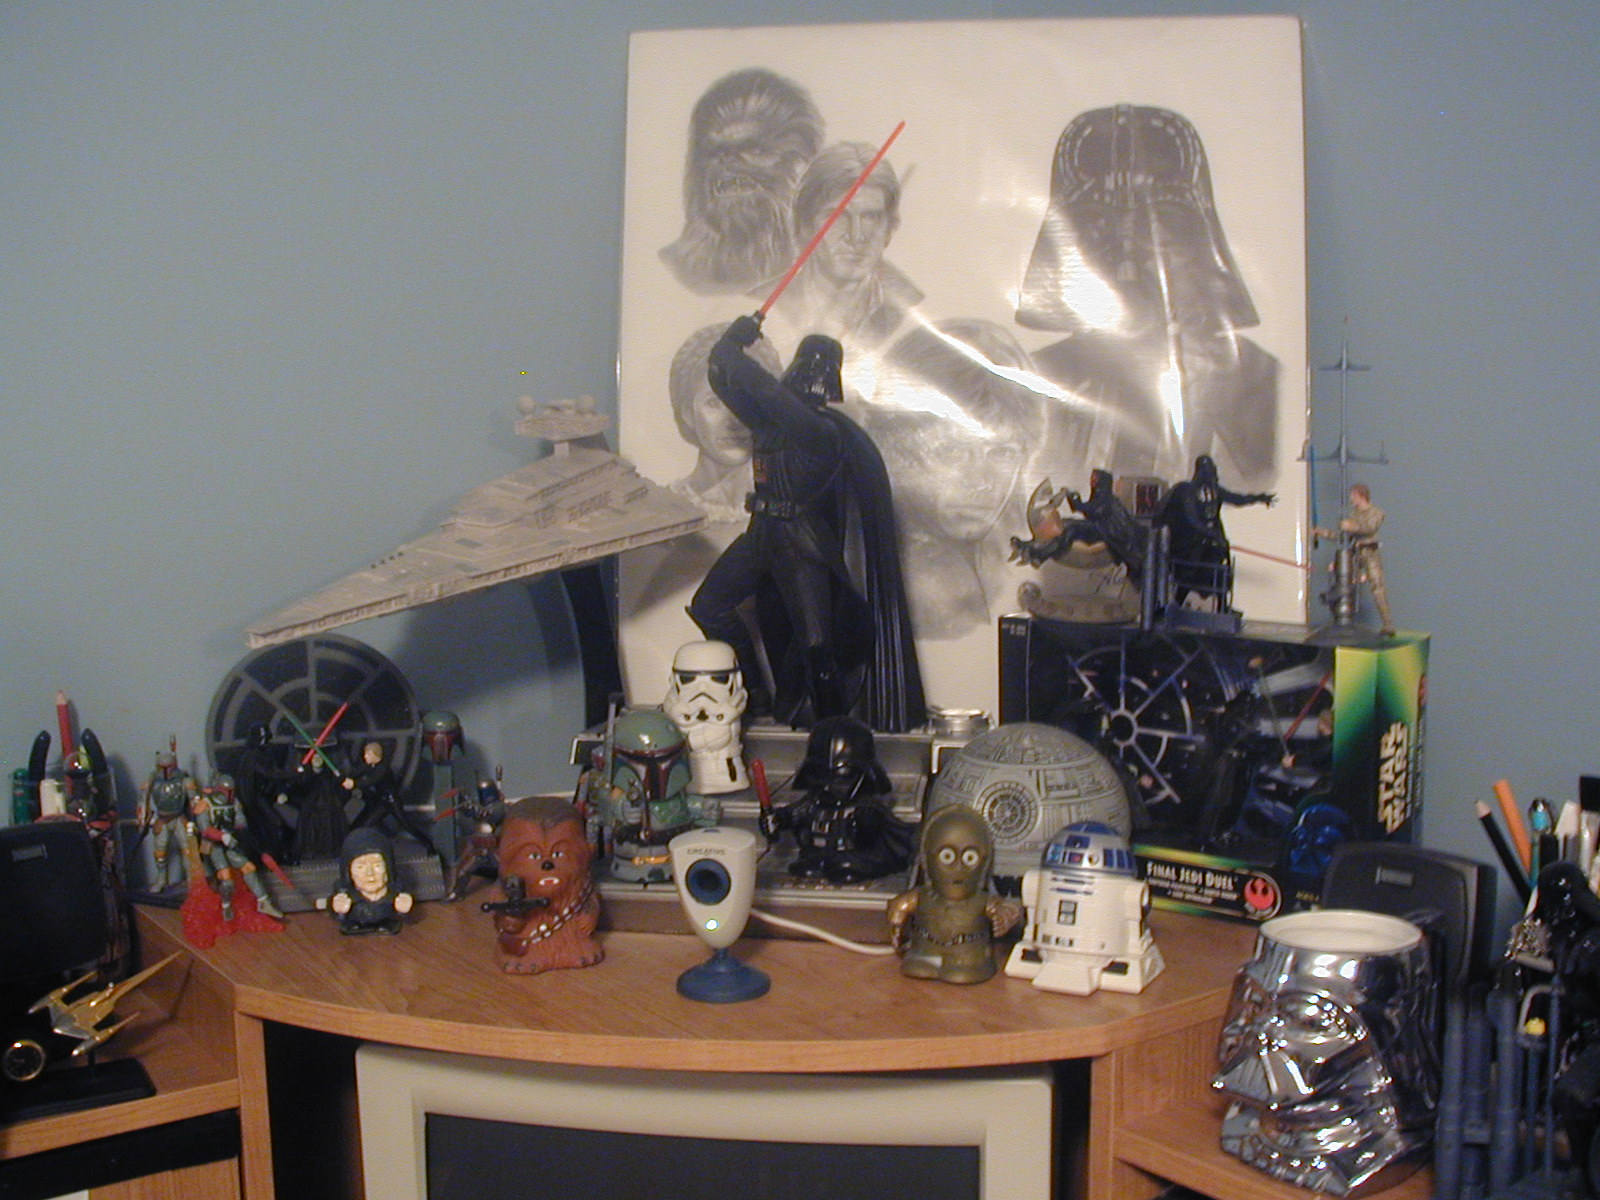 Wayne Humfleet's Collection